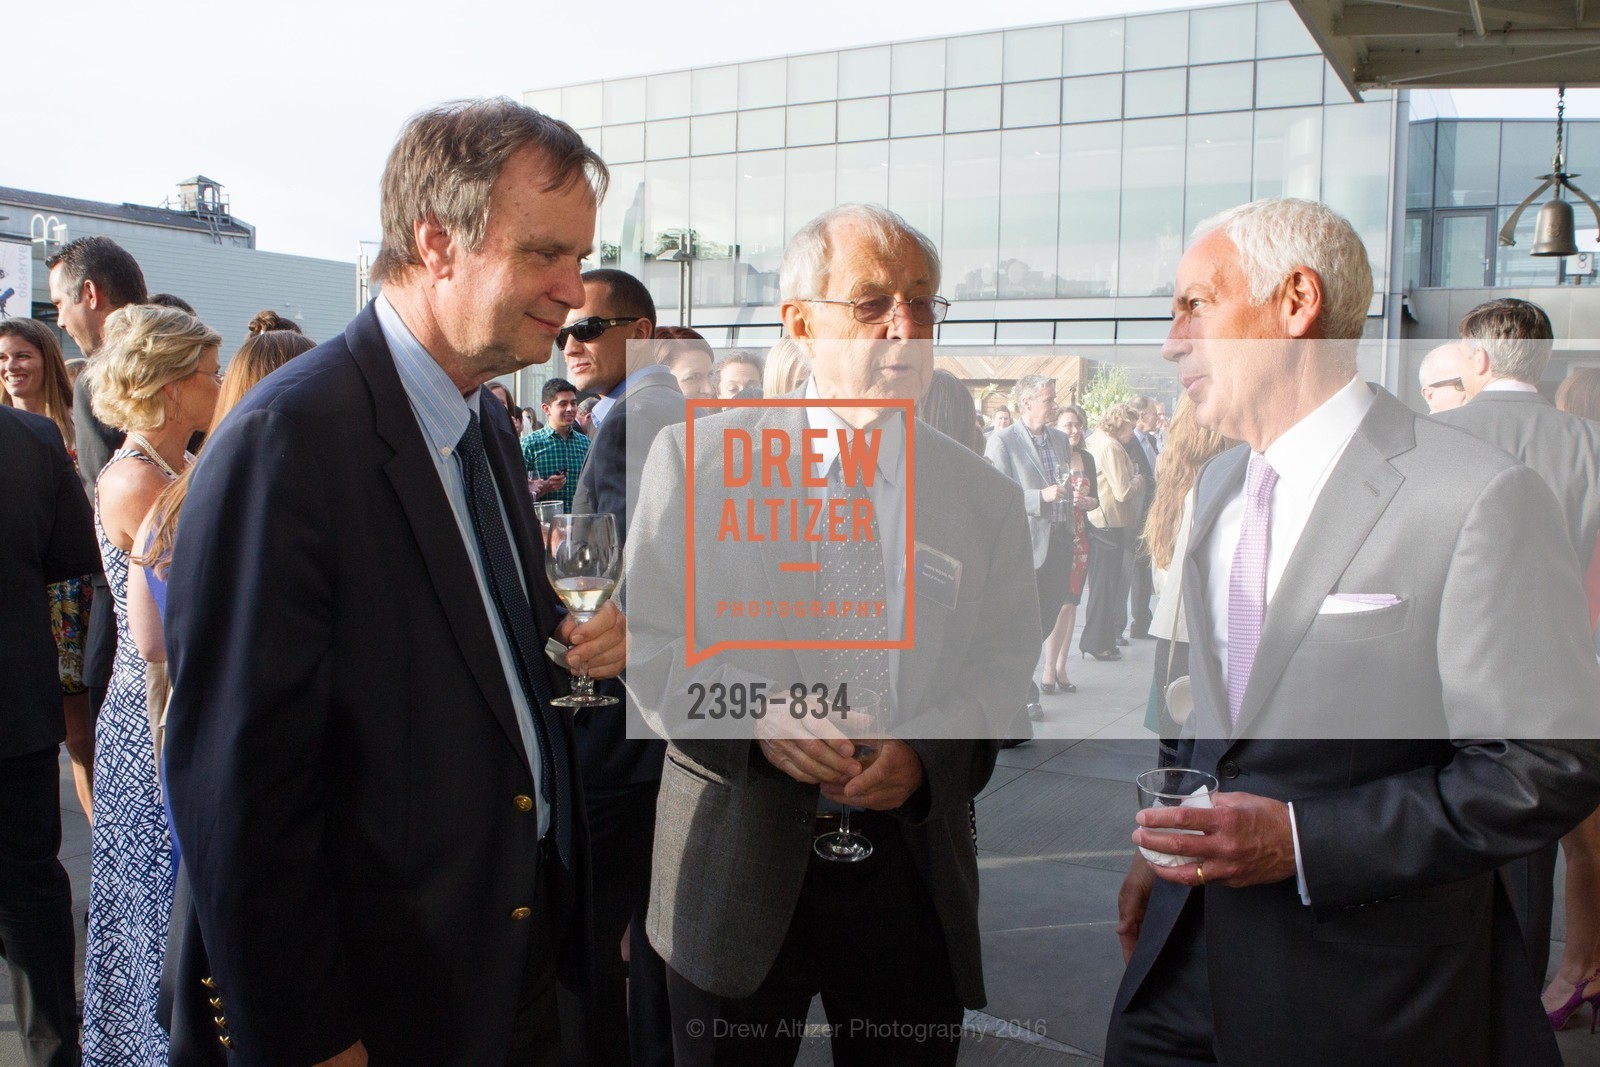 Peter Michelson, Stan Wojcicki, Jeff Farber, Exploratorium Spring Gala, Exploratorium, 140515, May 15th, 2014,Drew Altizer, Drew Altizer Photography, full-service agency, private events, San Francisco photographer, photographer california